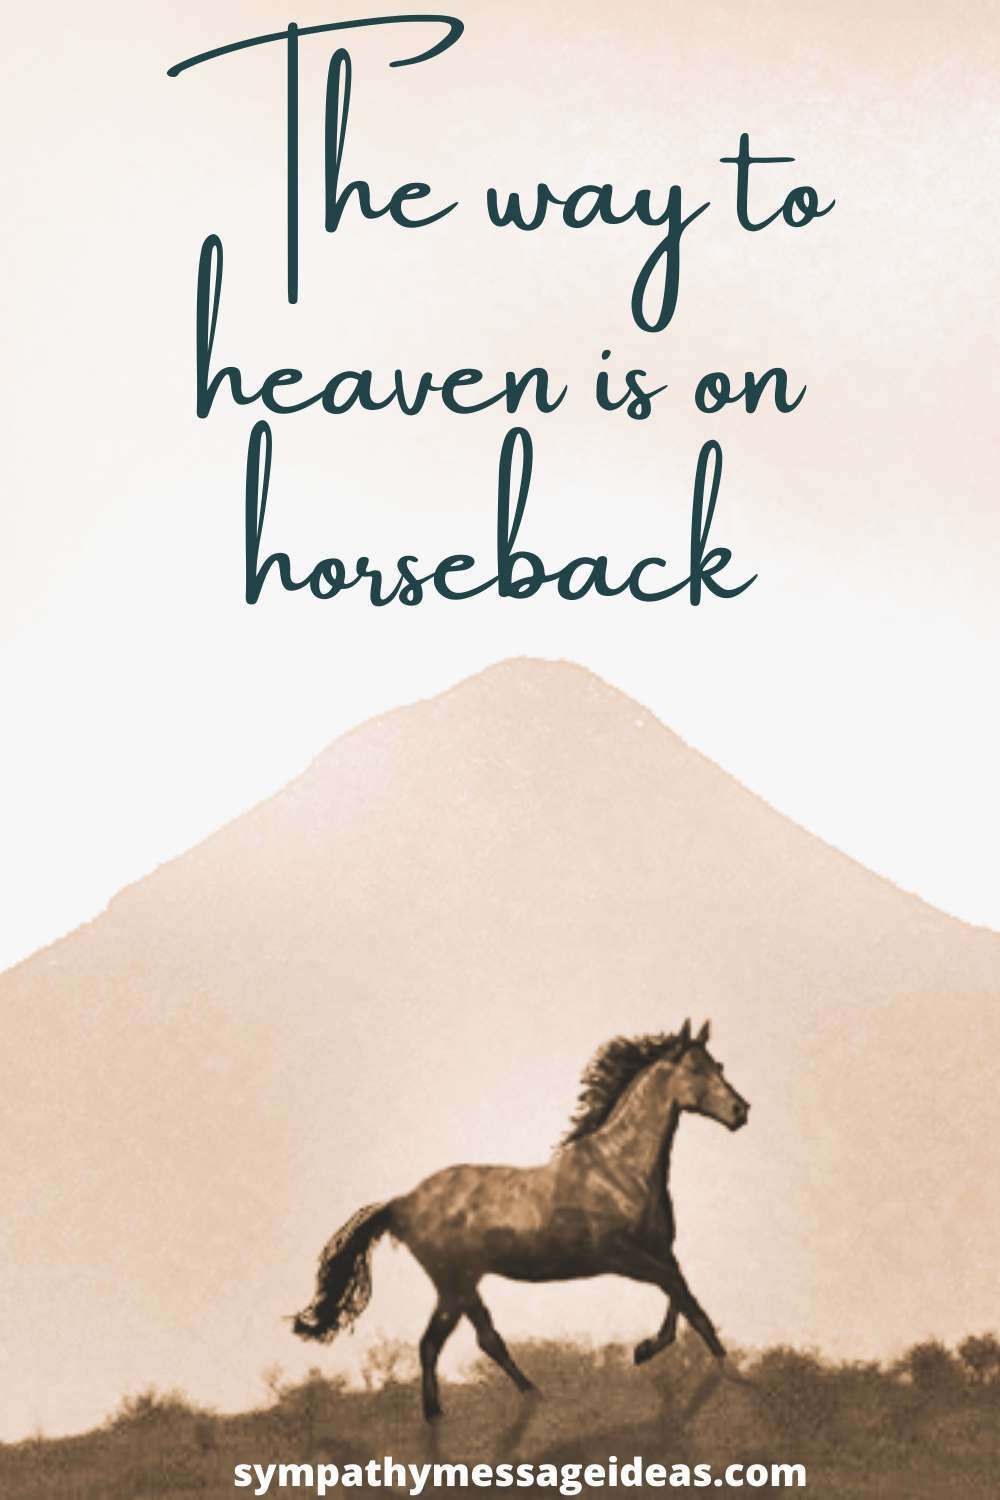 the way to heaven is on horseback quote